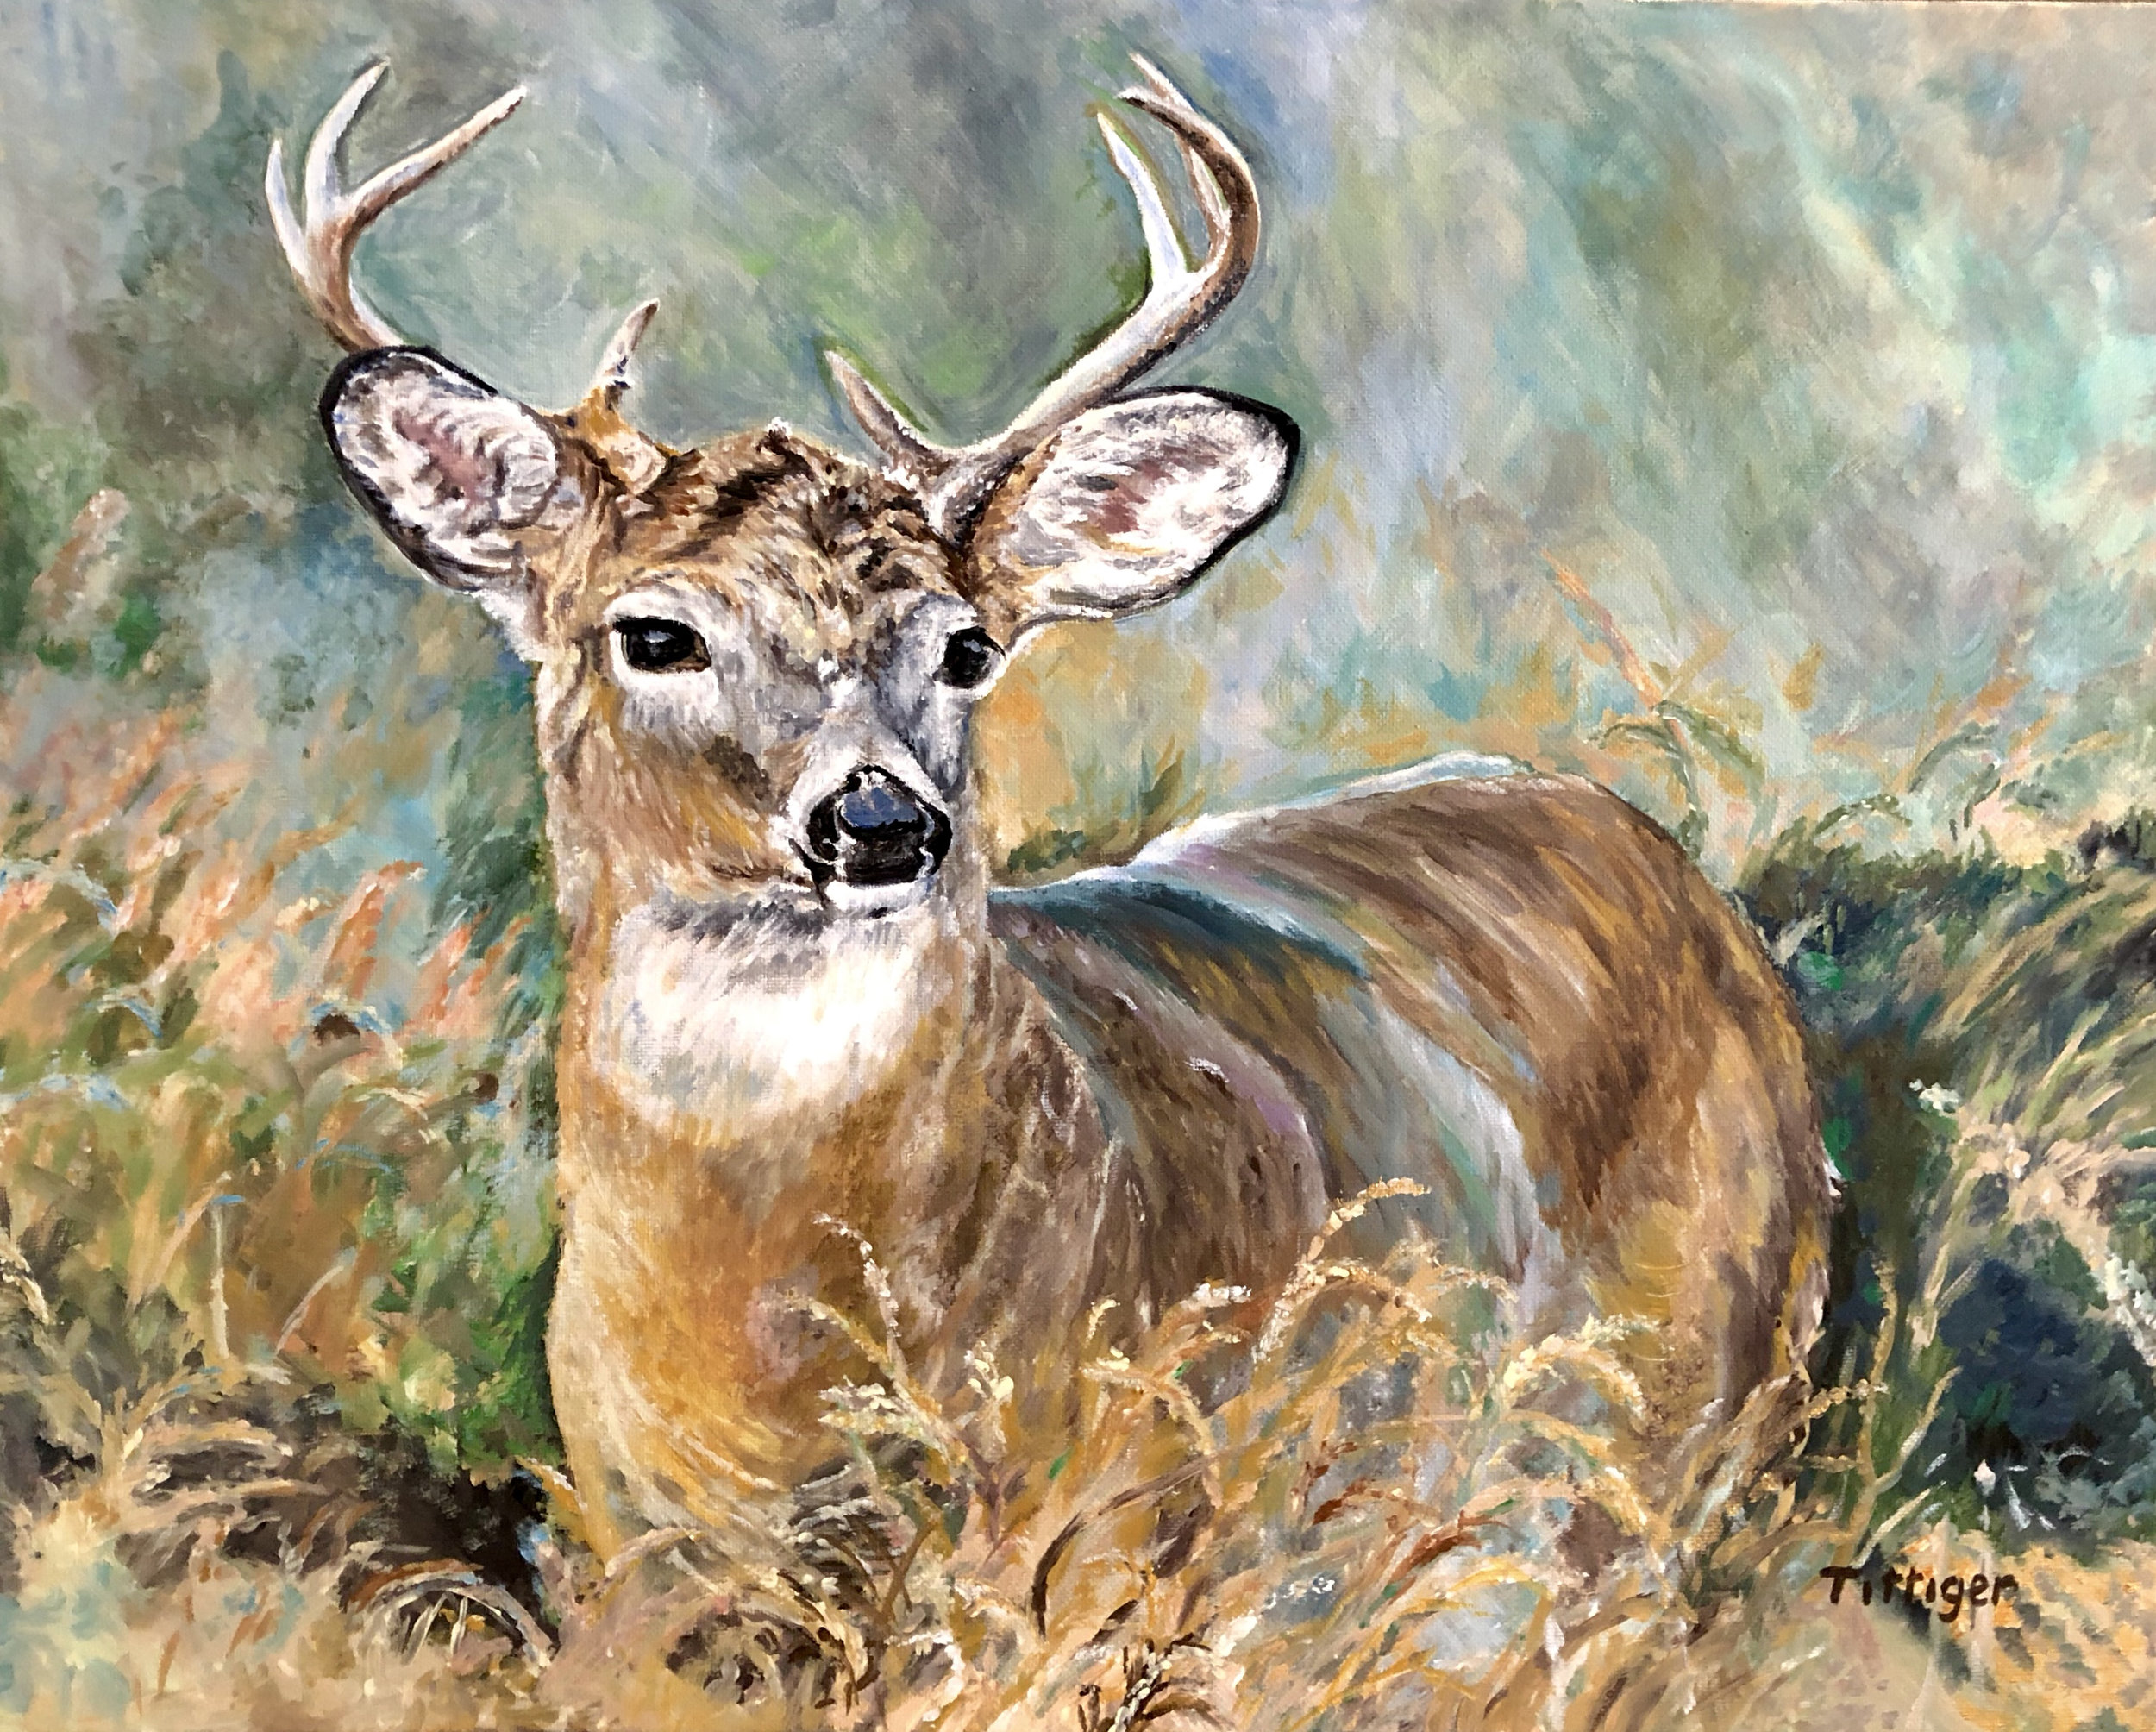 STILLNESS    This is a 16 x 20 beautiful acrylic painting of a buck. He just standing so still among the fall grass. I love all the colors. I grew up in the country so this painting brings back many memories of all the wildlife in the area.